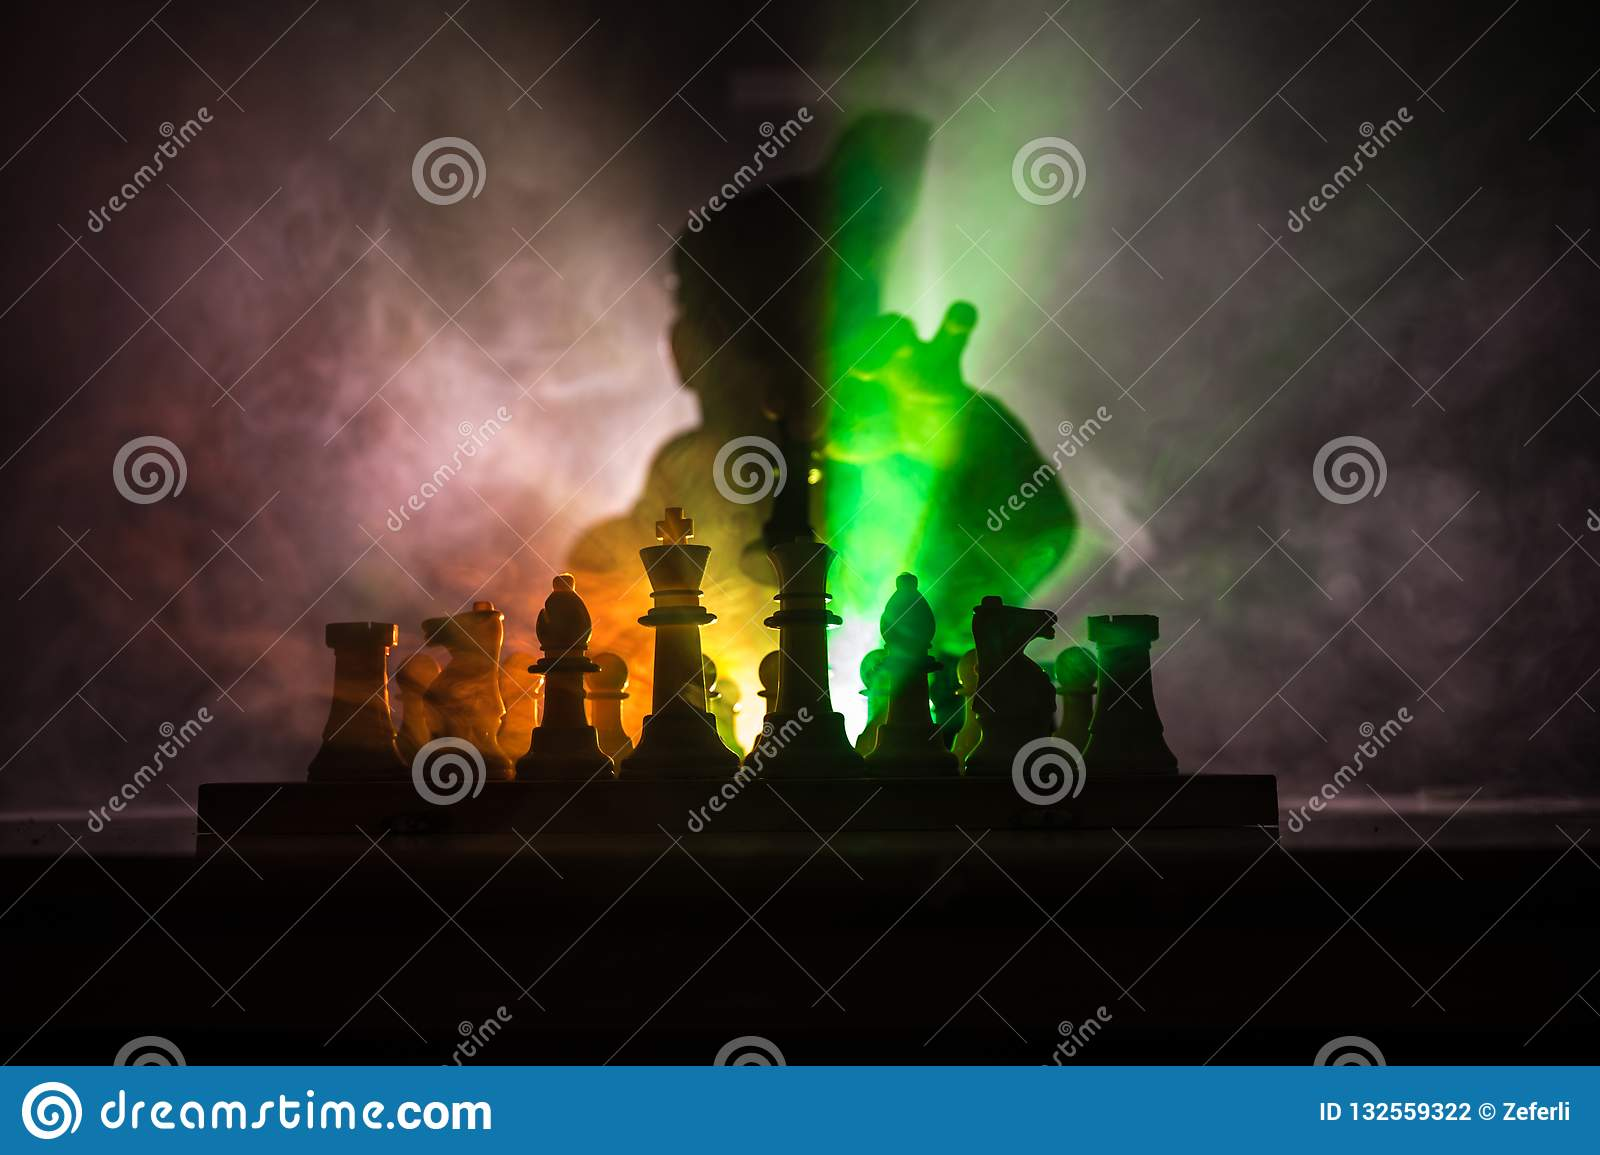 Man playing chess. Scary blurred silhouette of a person at the chessboard with chess figures. Dark toned foggy background